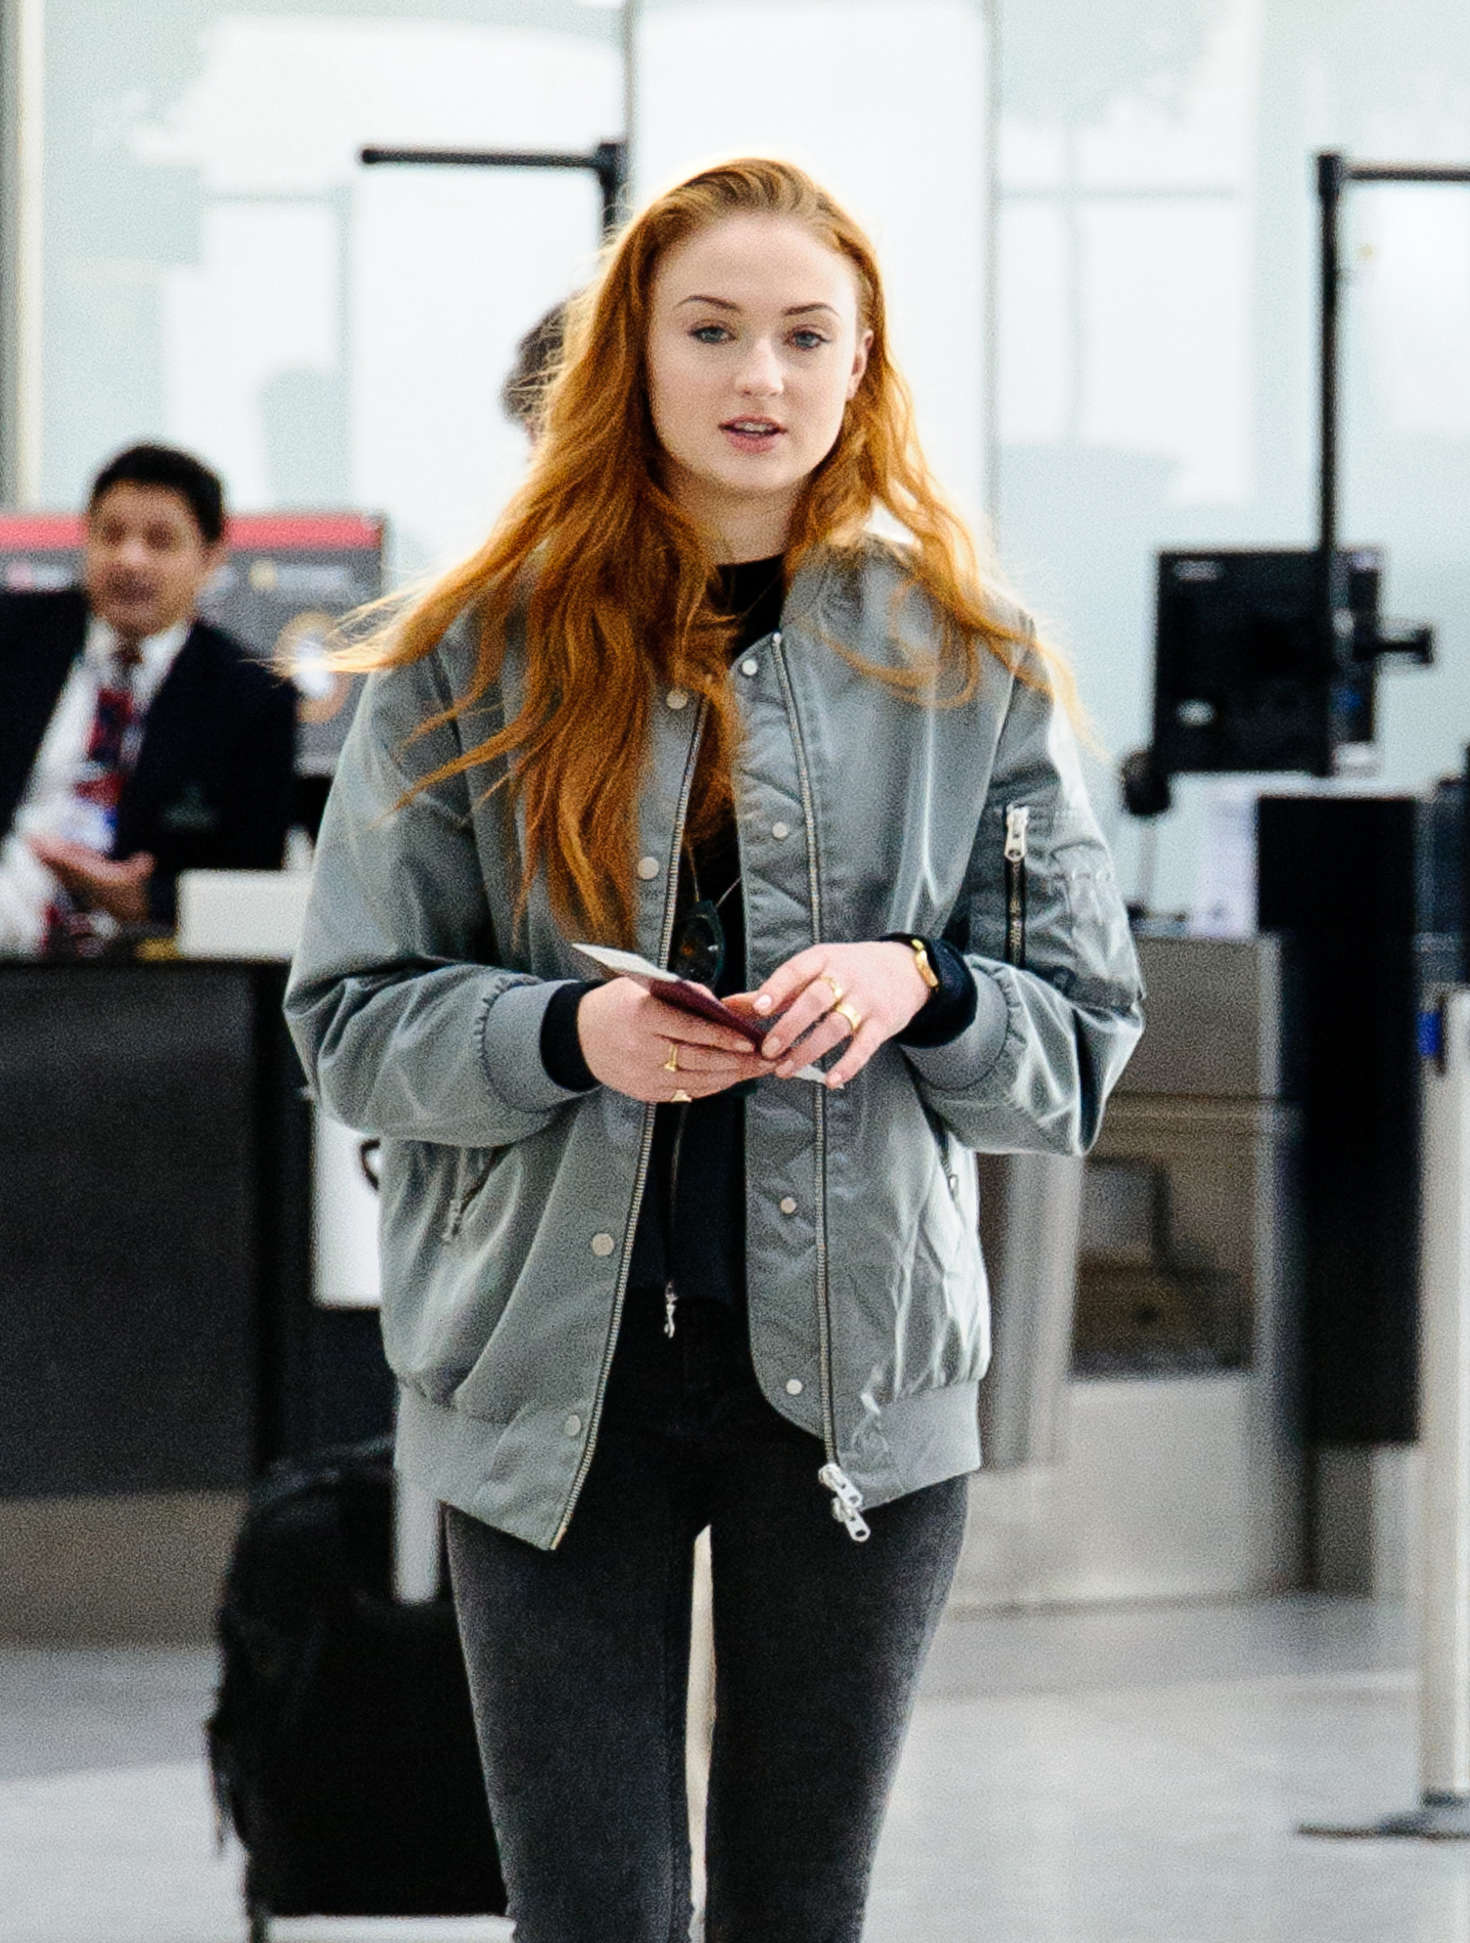 Sophie Turner in Tight Jeans at Heathrow Airport in London